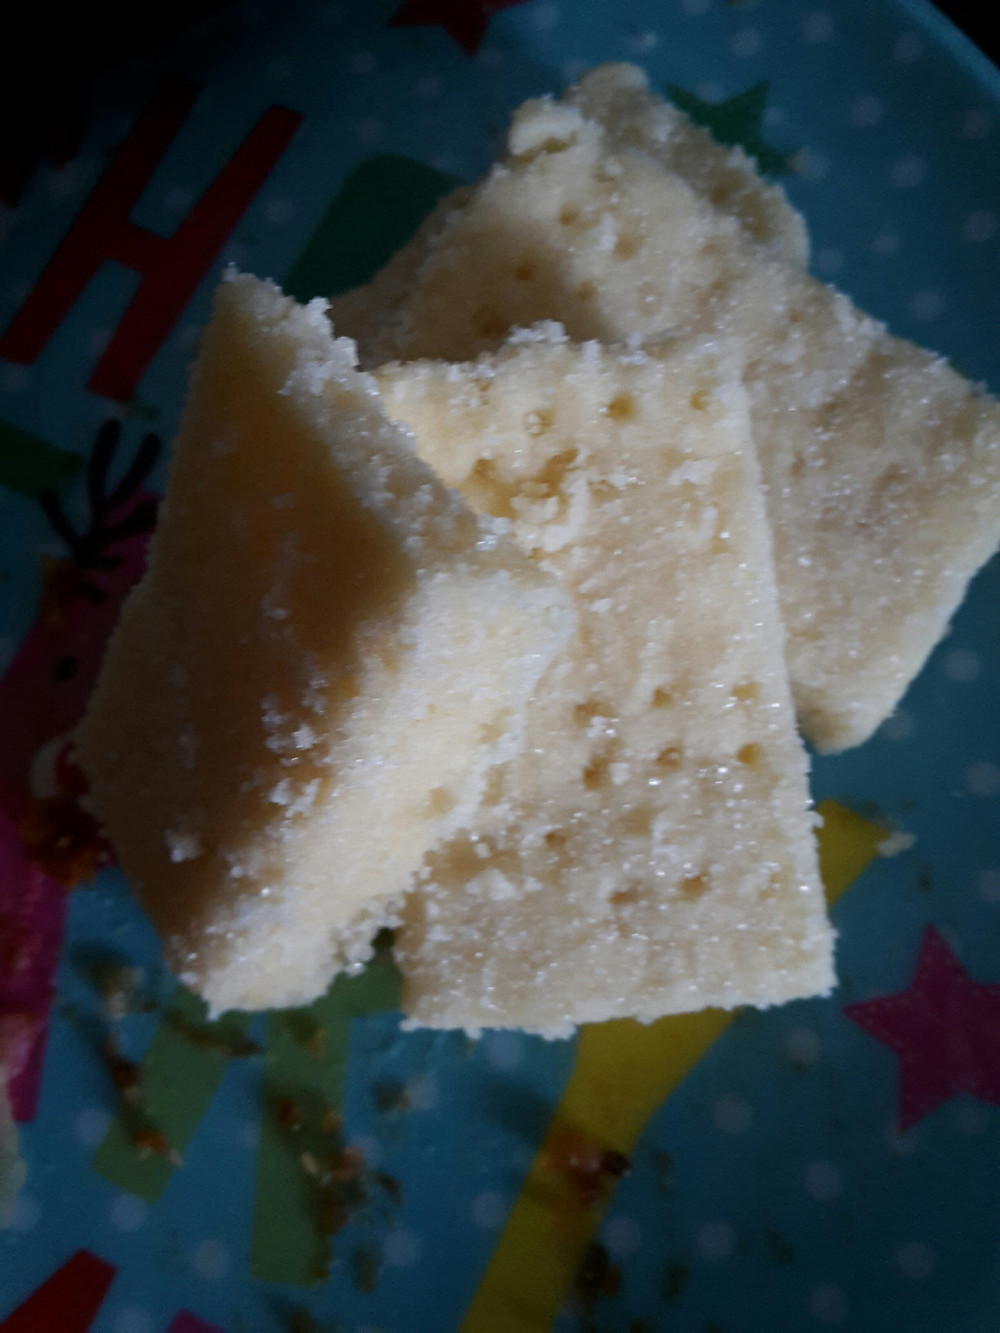 Four pieces of yummy homemade shortbread